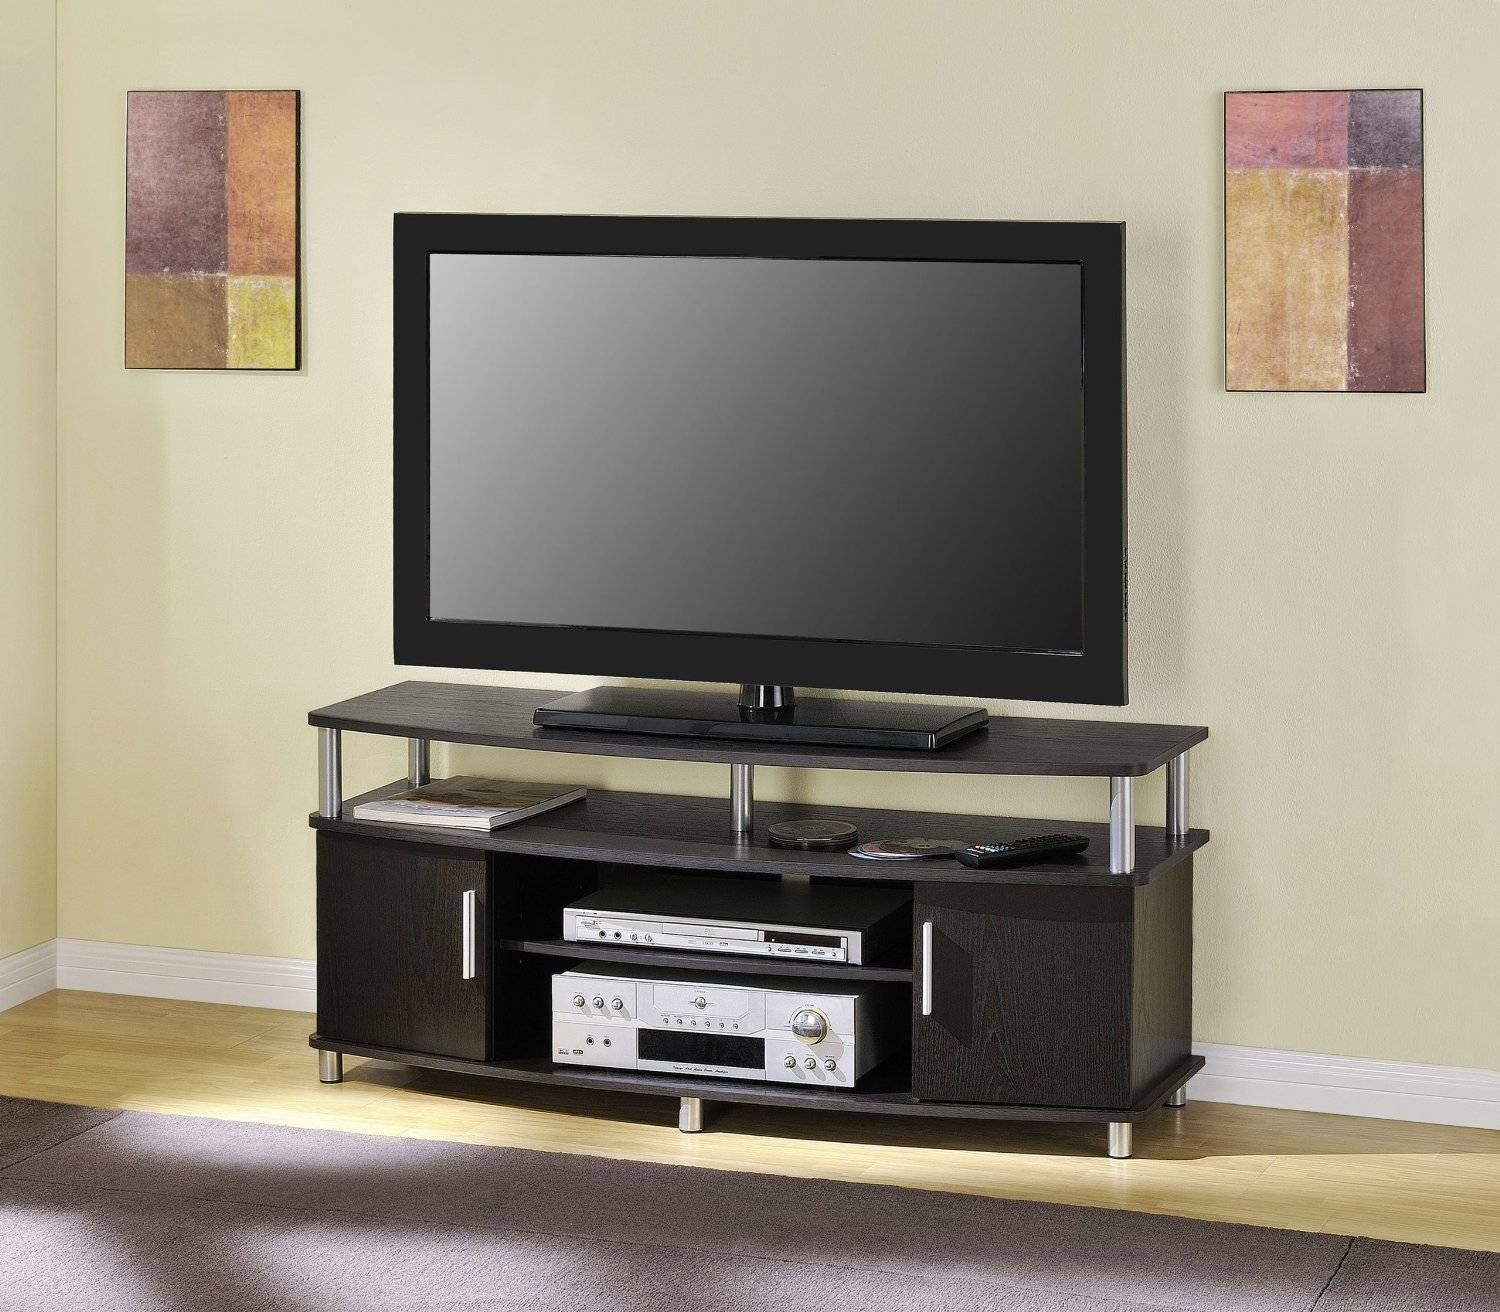 16 Best Tv Images On Pinterest: 15 Ideas Of Modern Tv Stands For 60 Inch Tvs